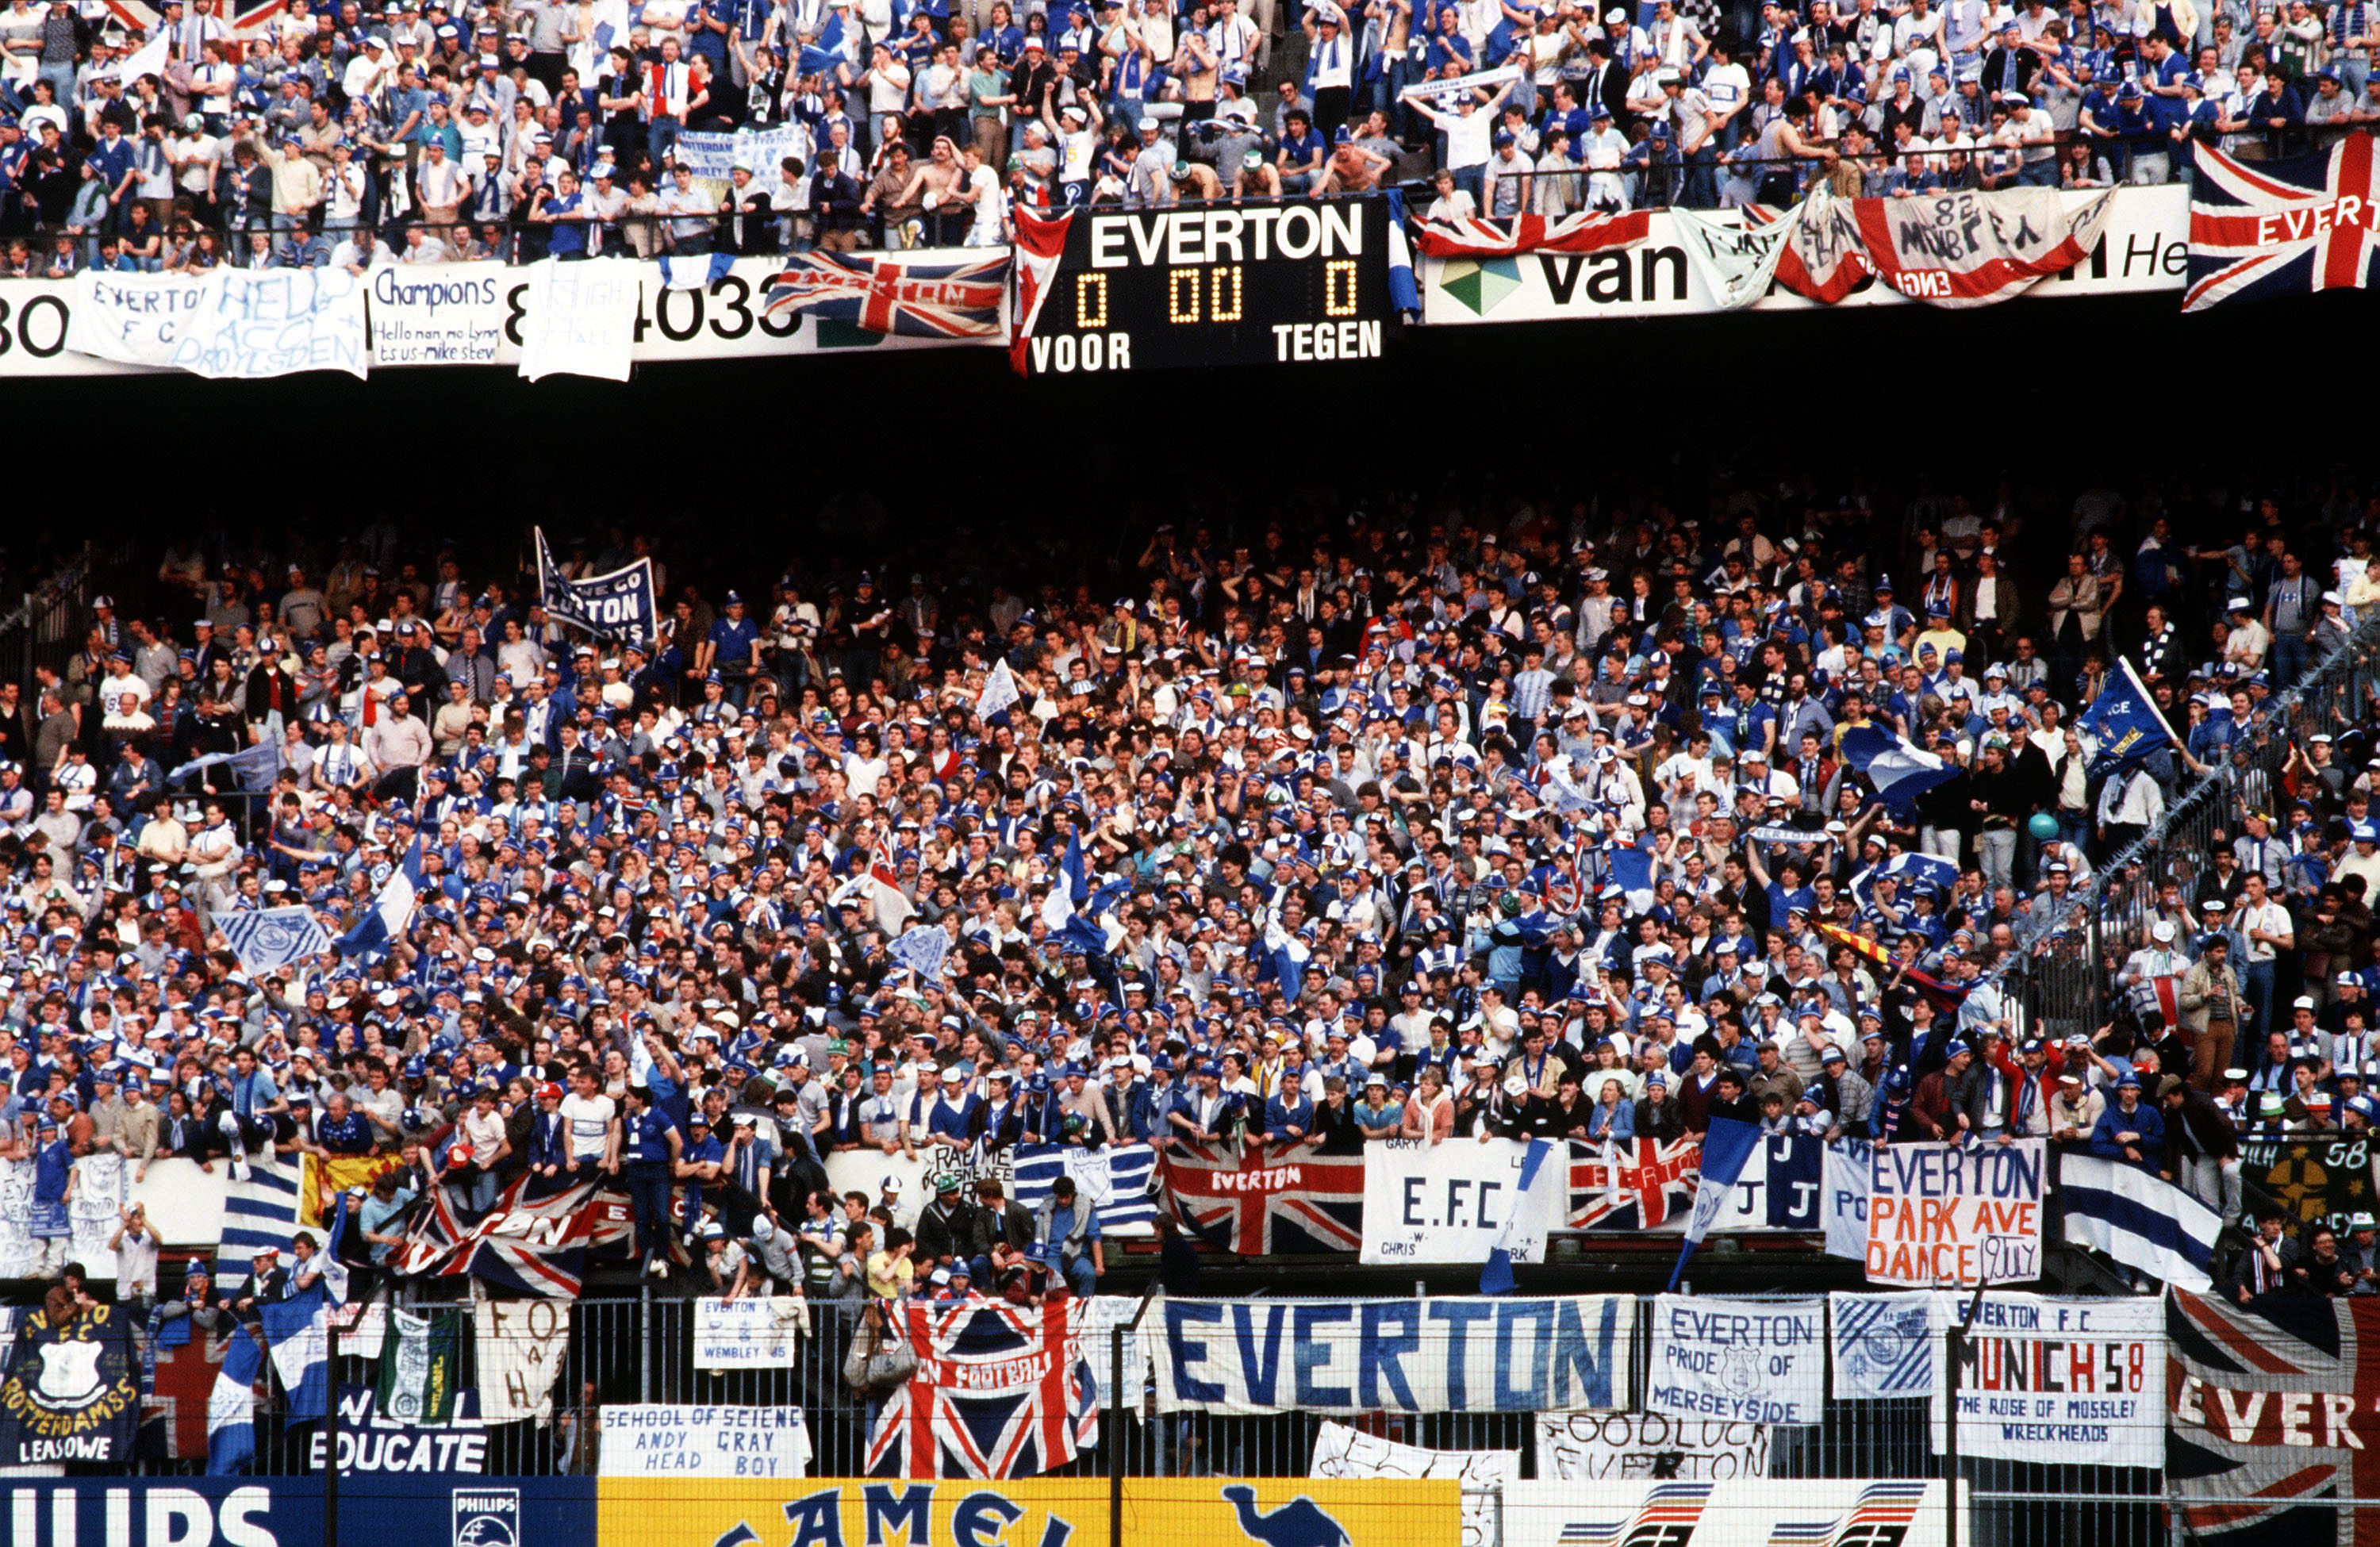 Rotterdam 85 Fans Memories Of A Magical Night